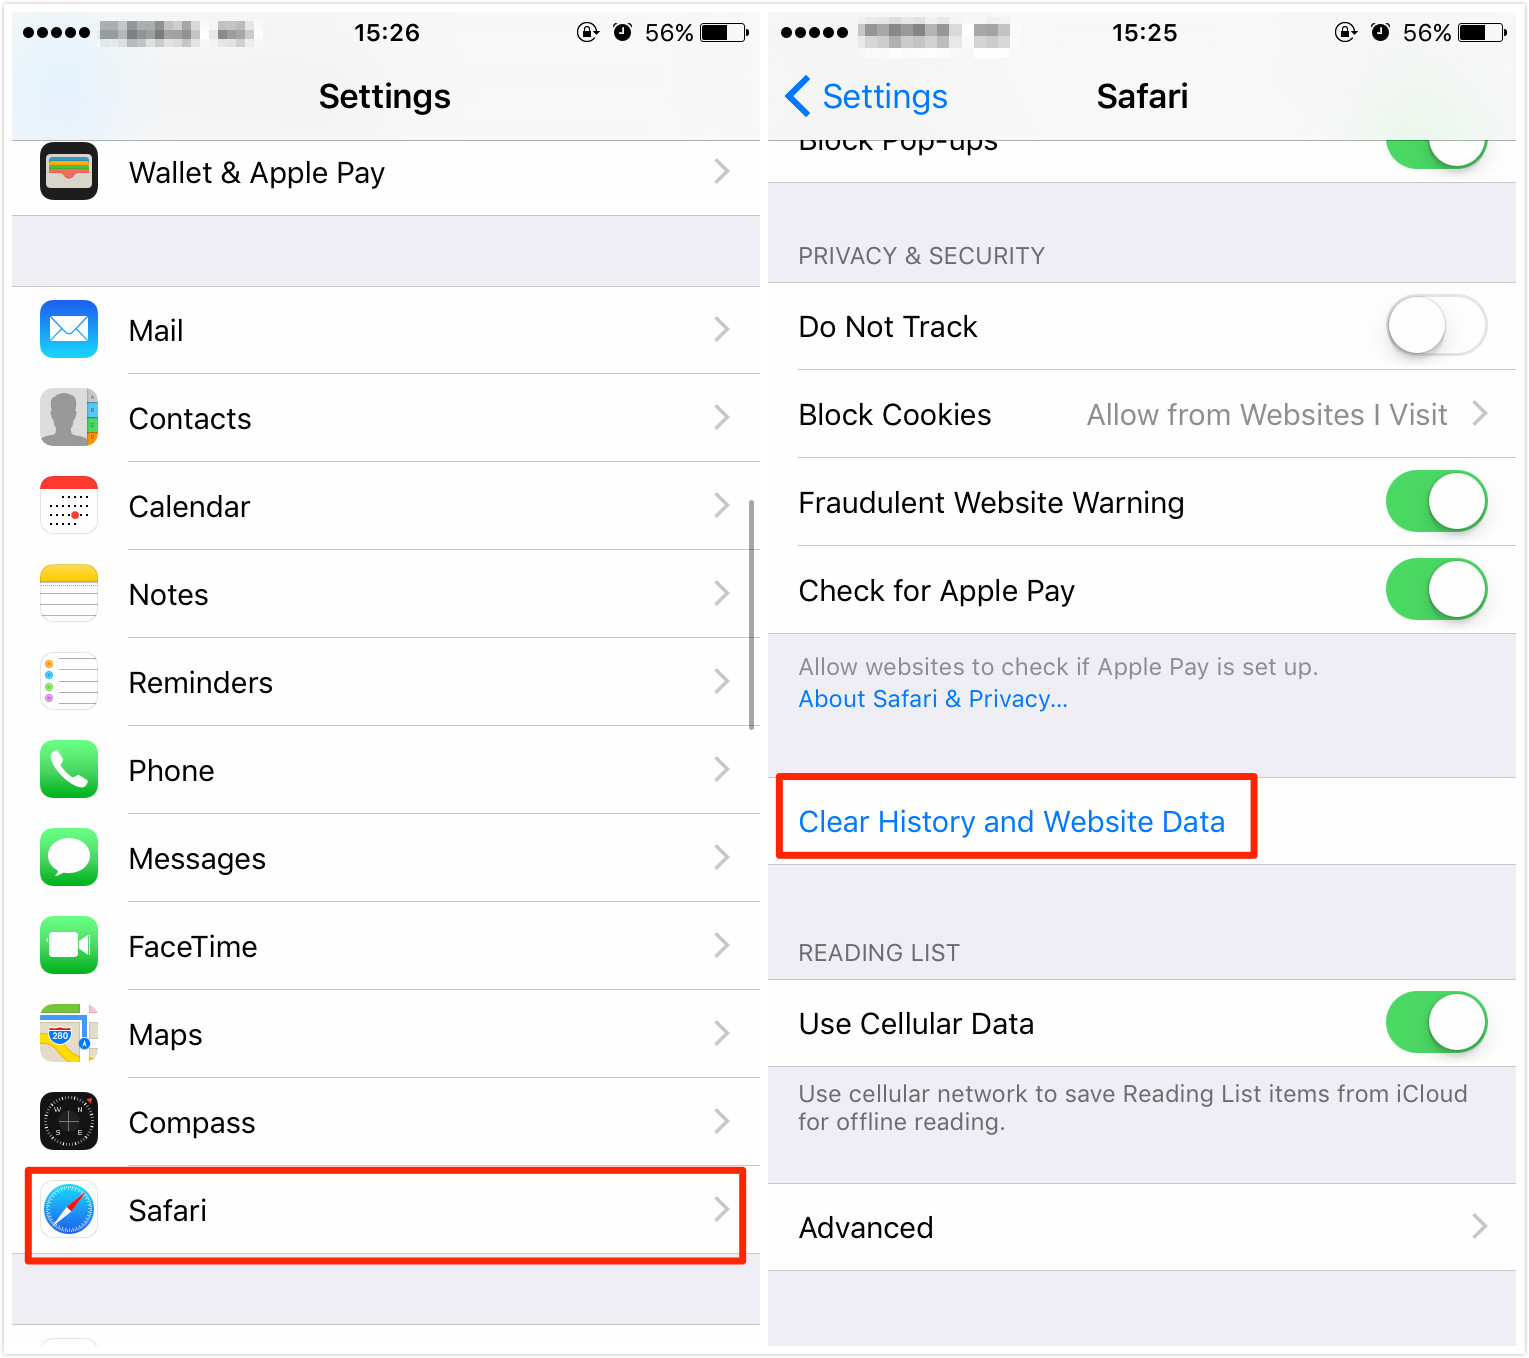 How to Fix iTunes Error 9 on iPhone/iPad via Clearing Junk Files